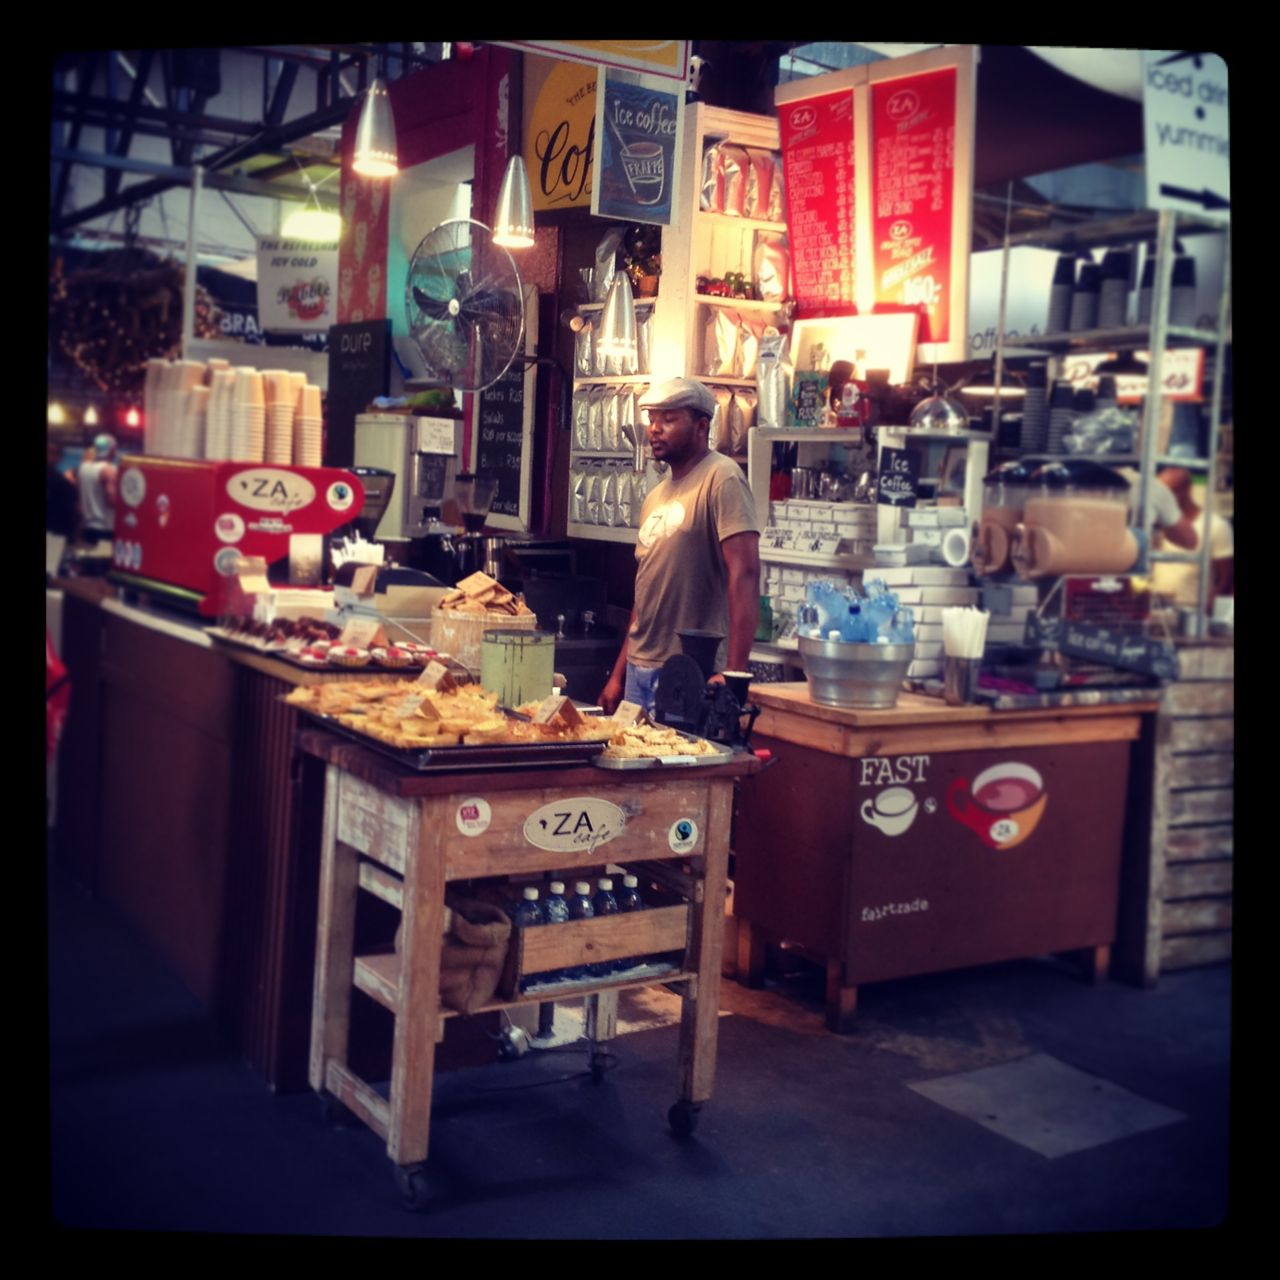 One of Cape Town's many yummy markets (where you can buy all kinds of freshly prepared food)...